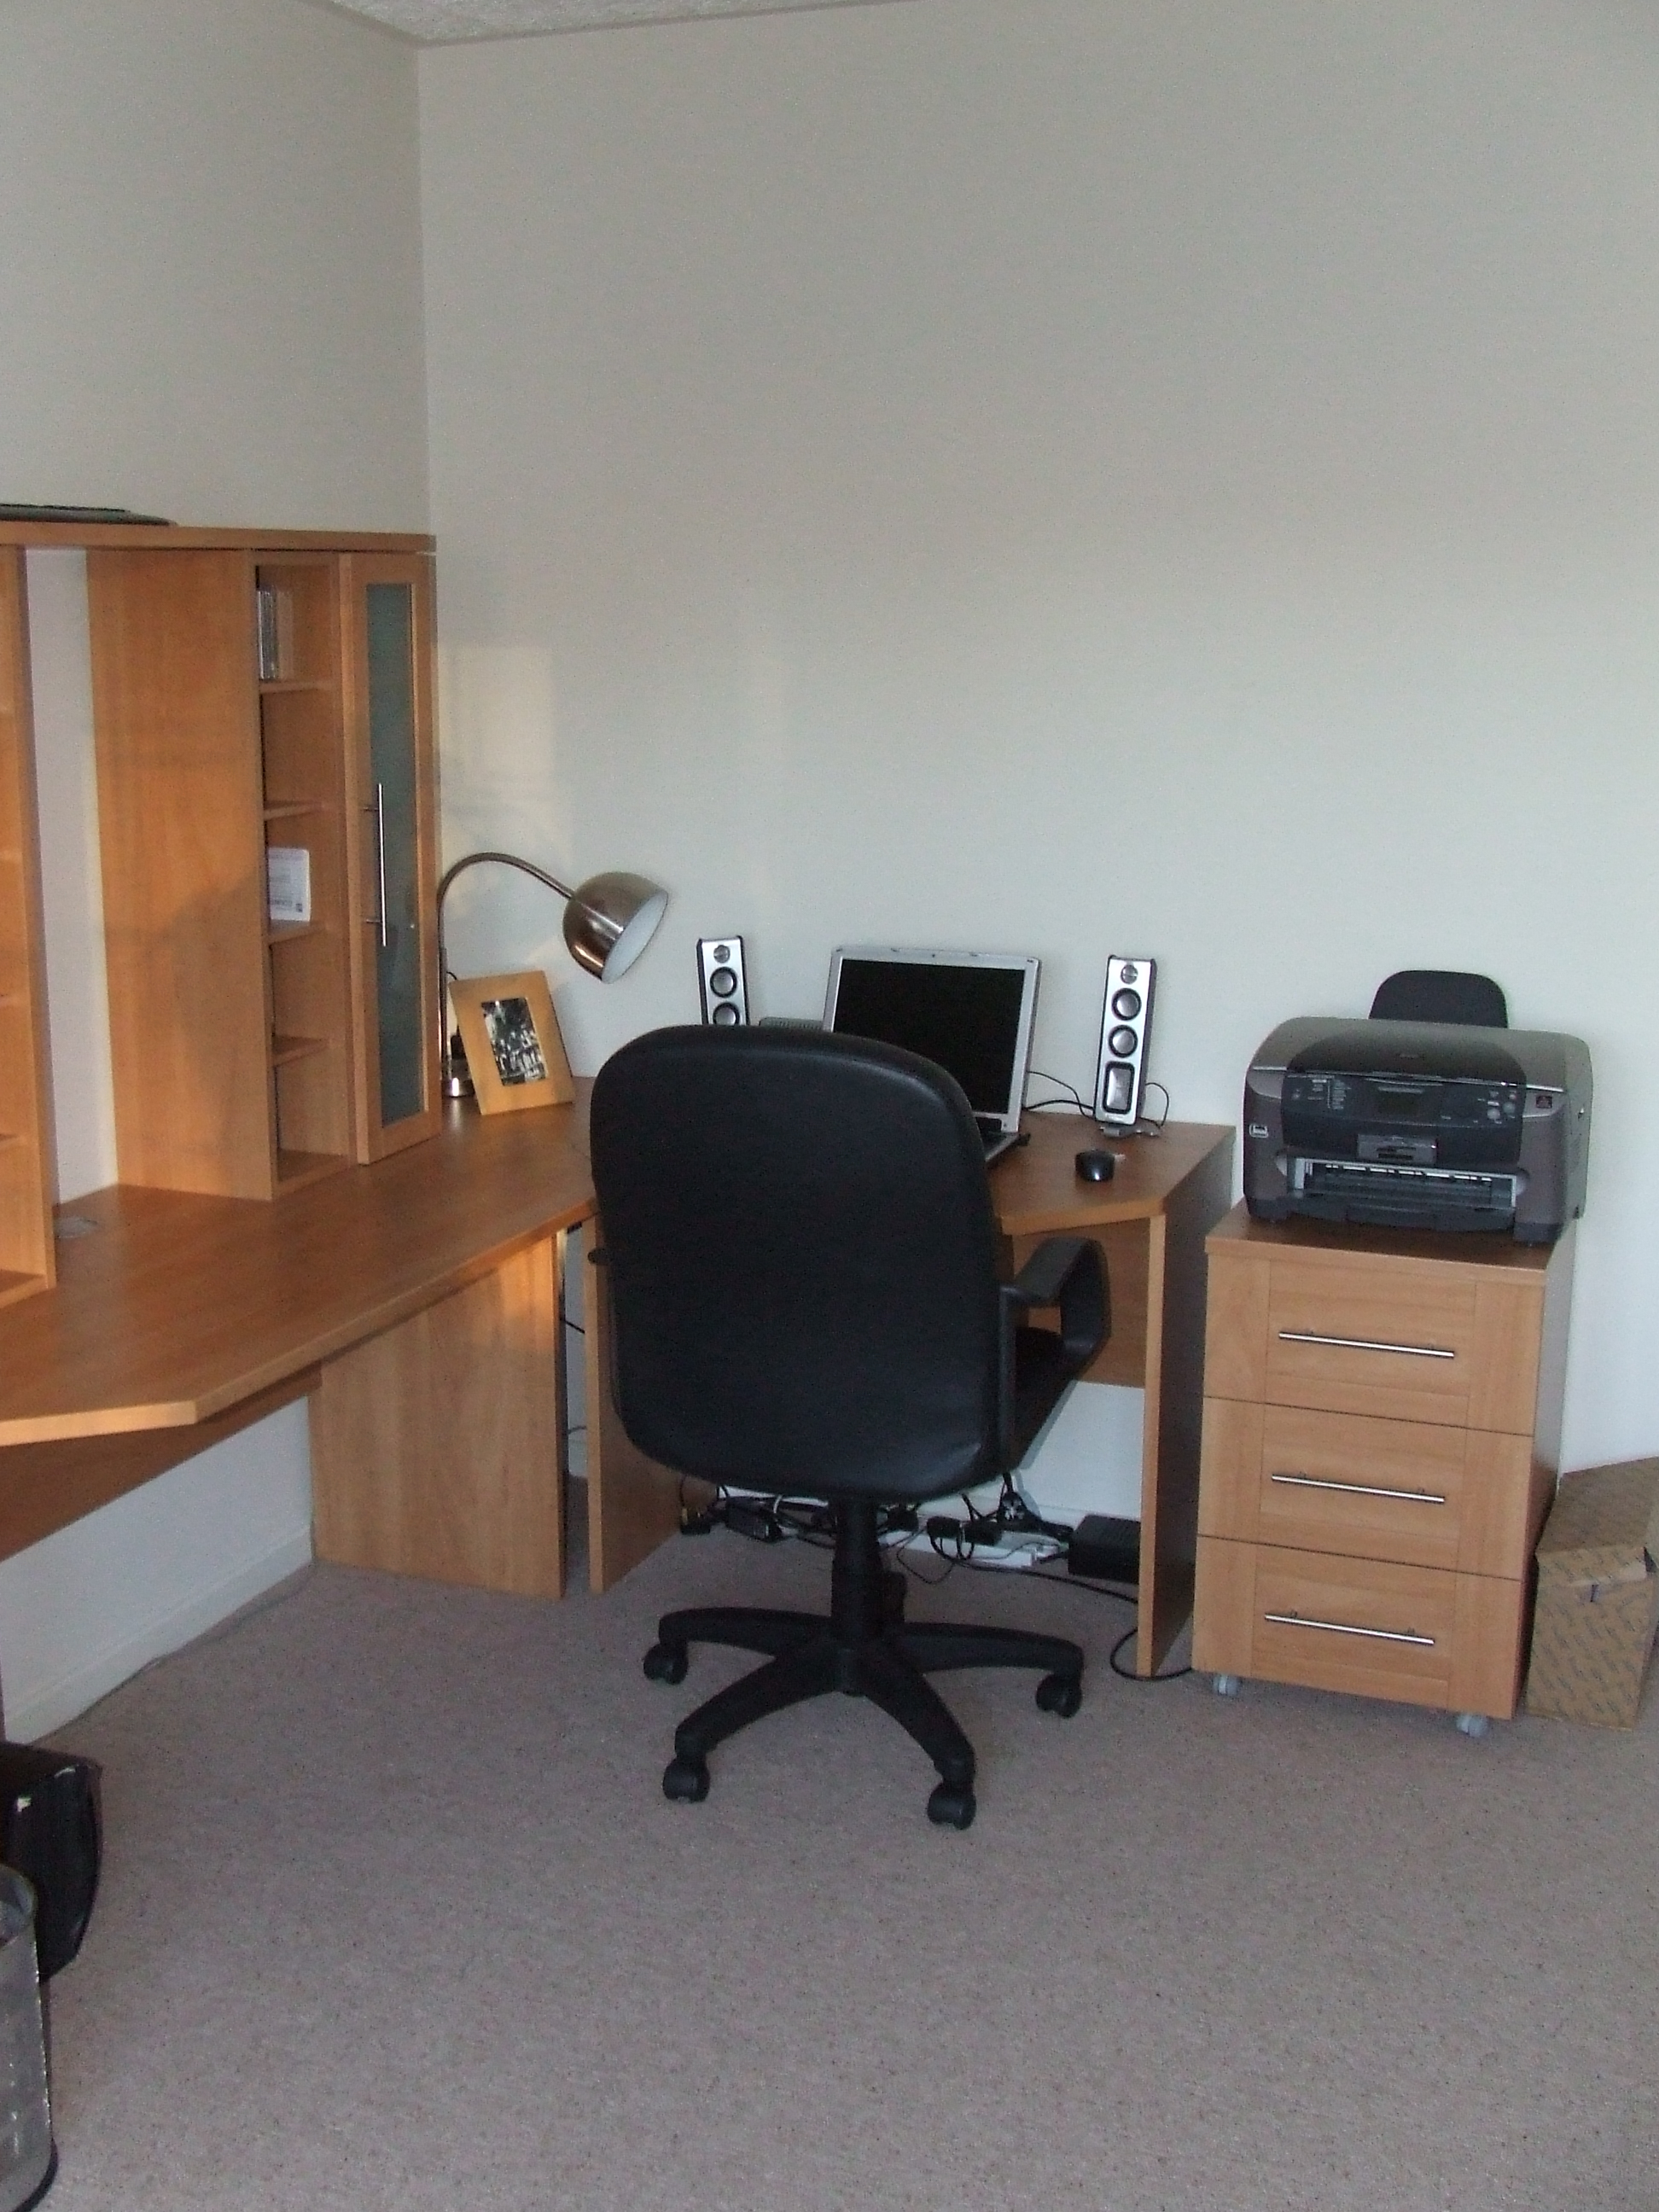 Small Space Bedroom Office Training Room